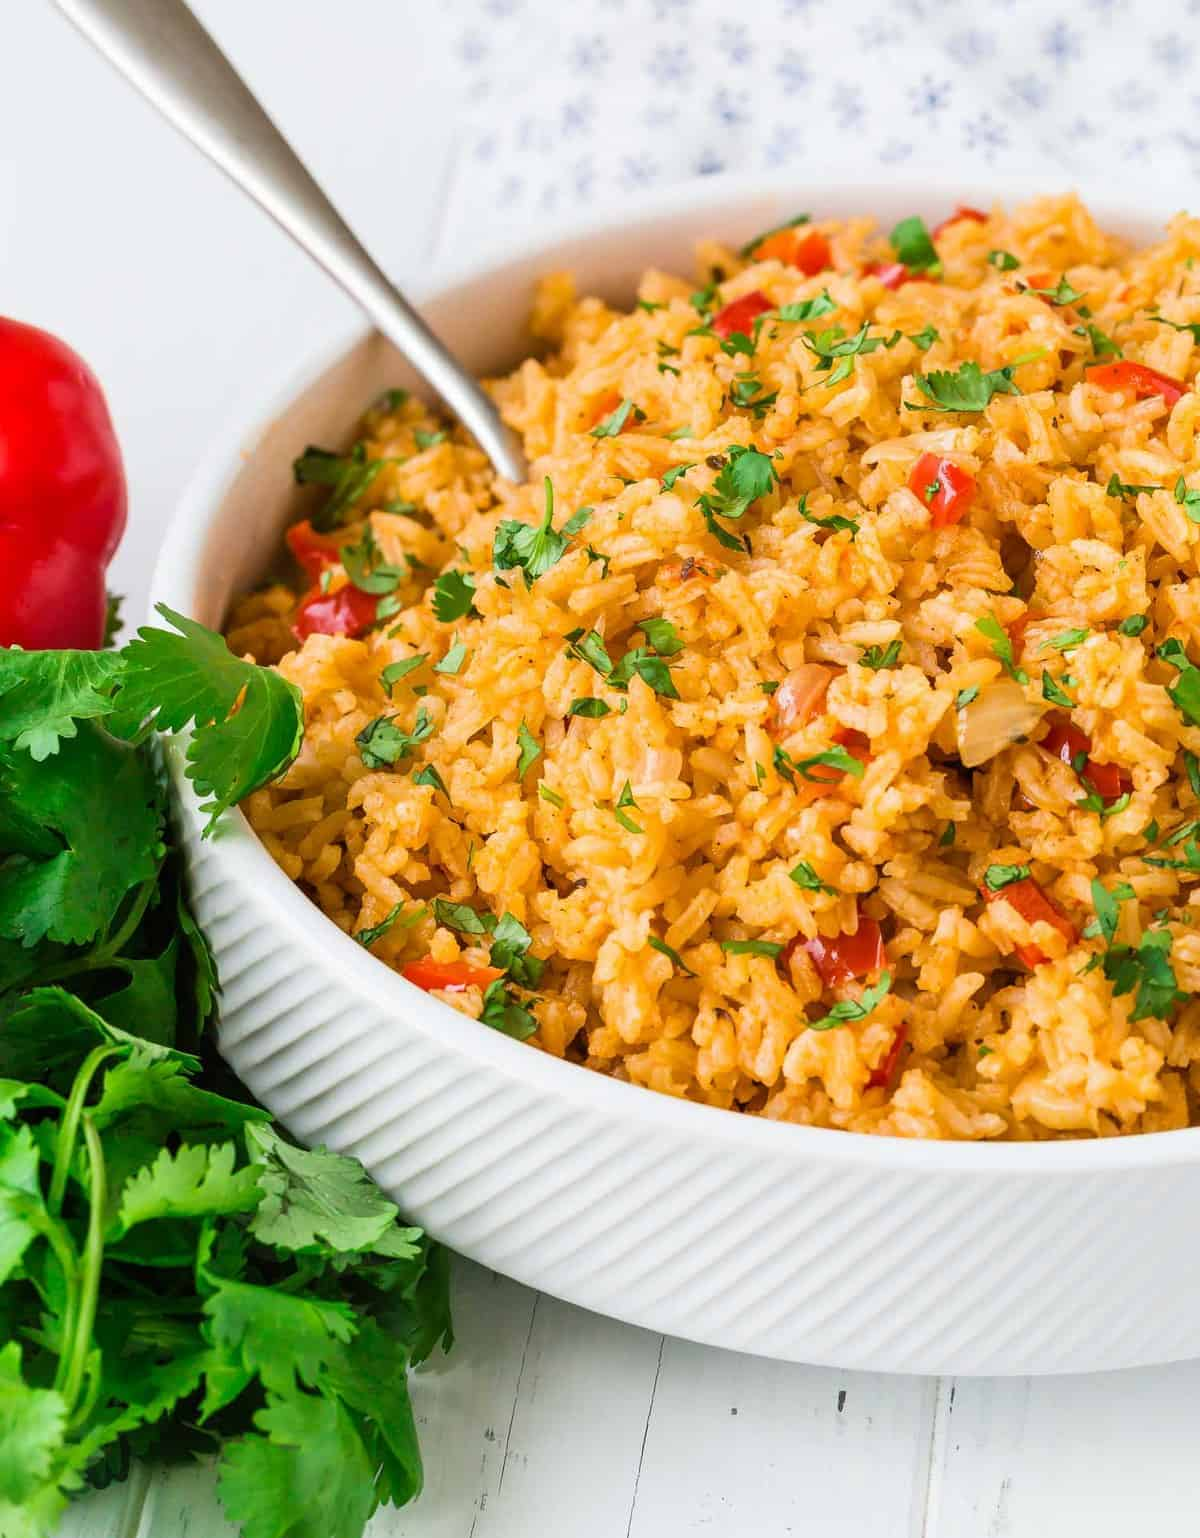 Mexican rice in a white bowl with a silver serving spoon.